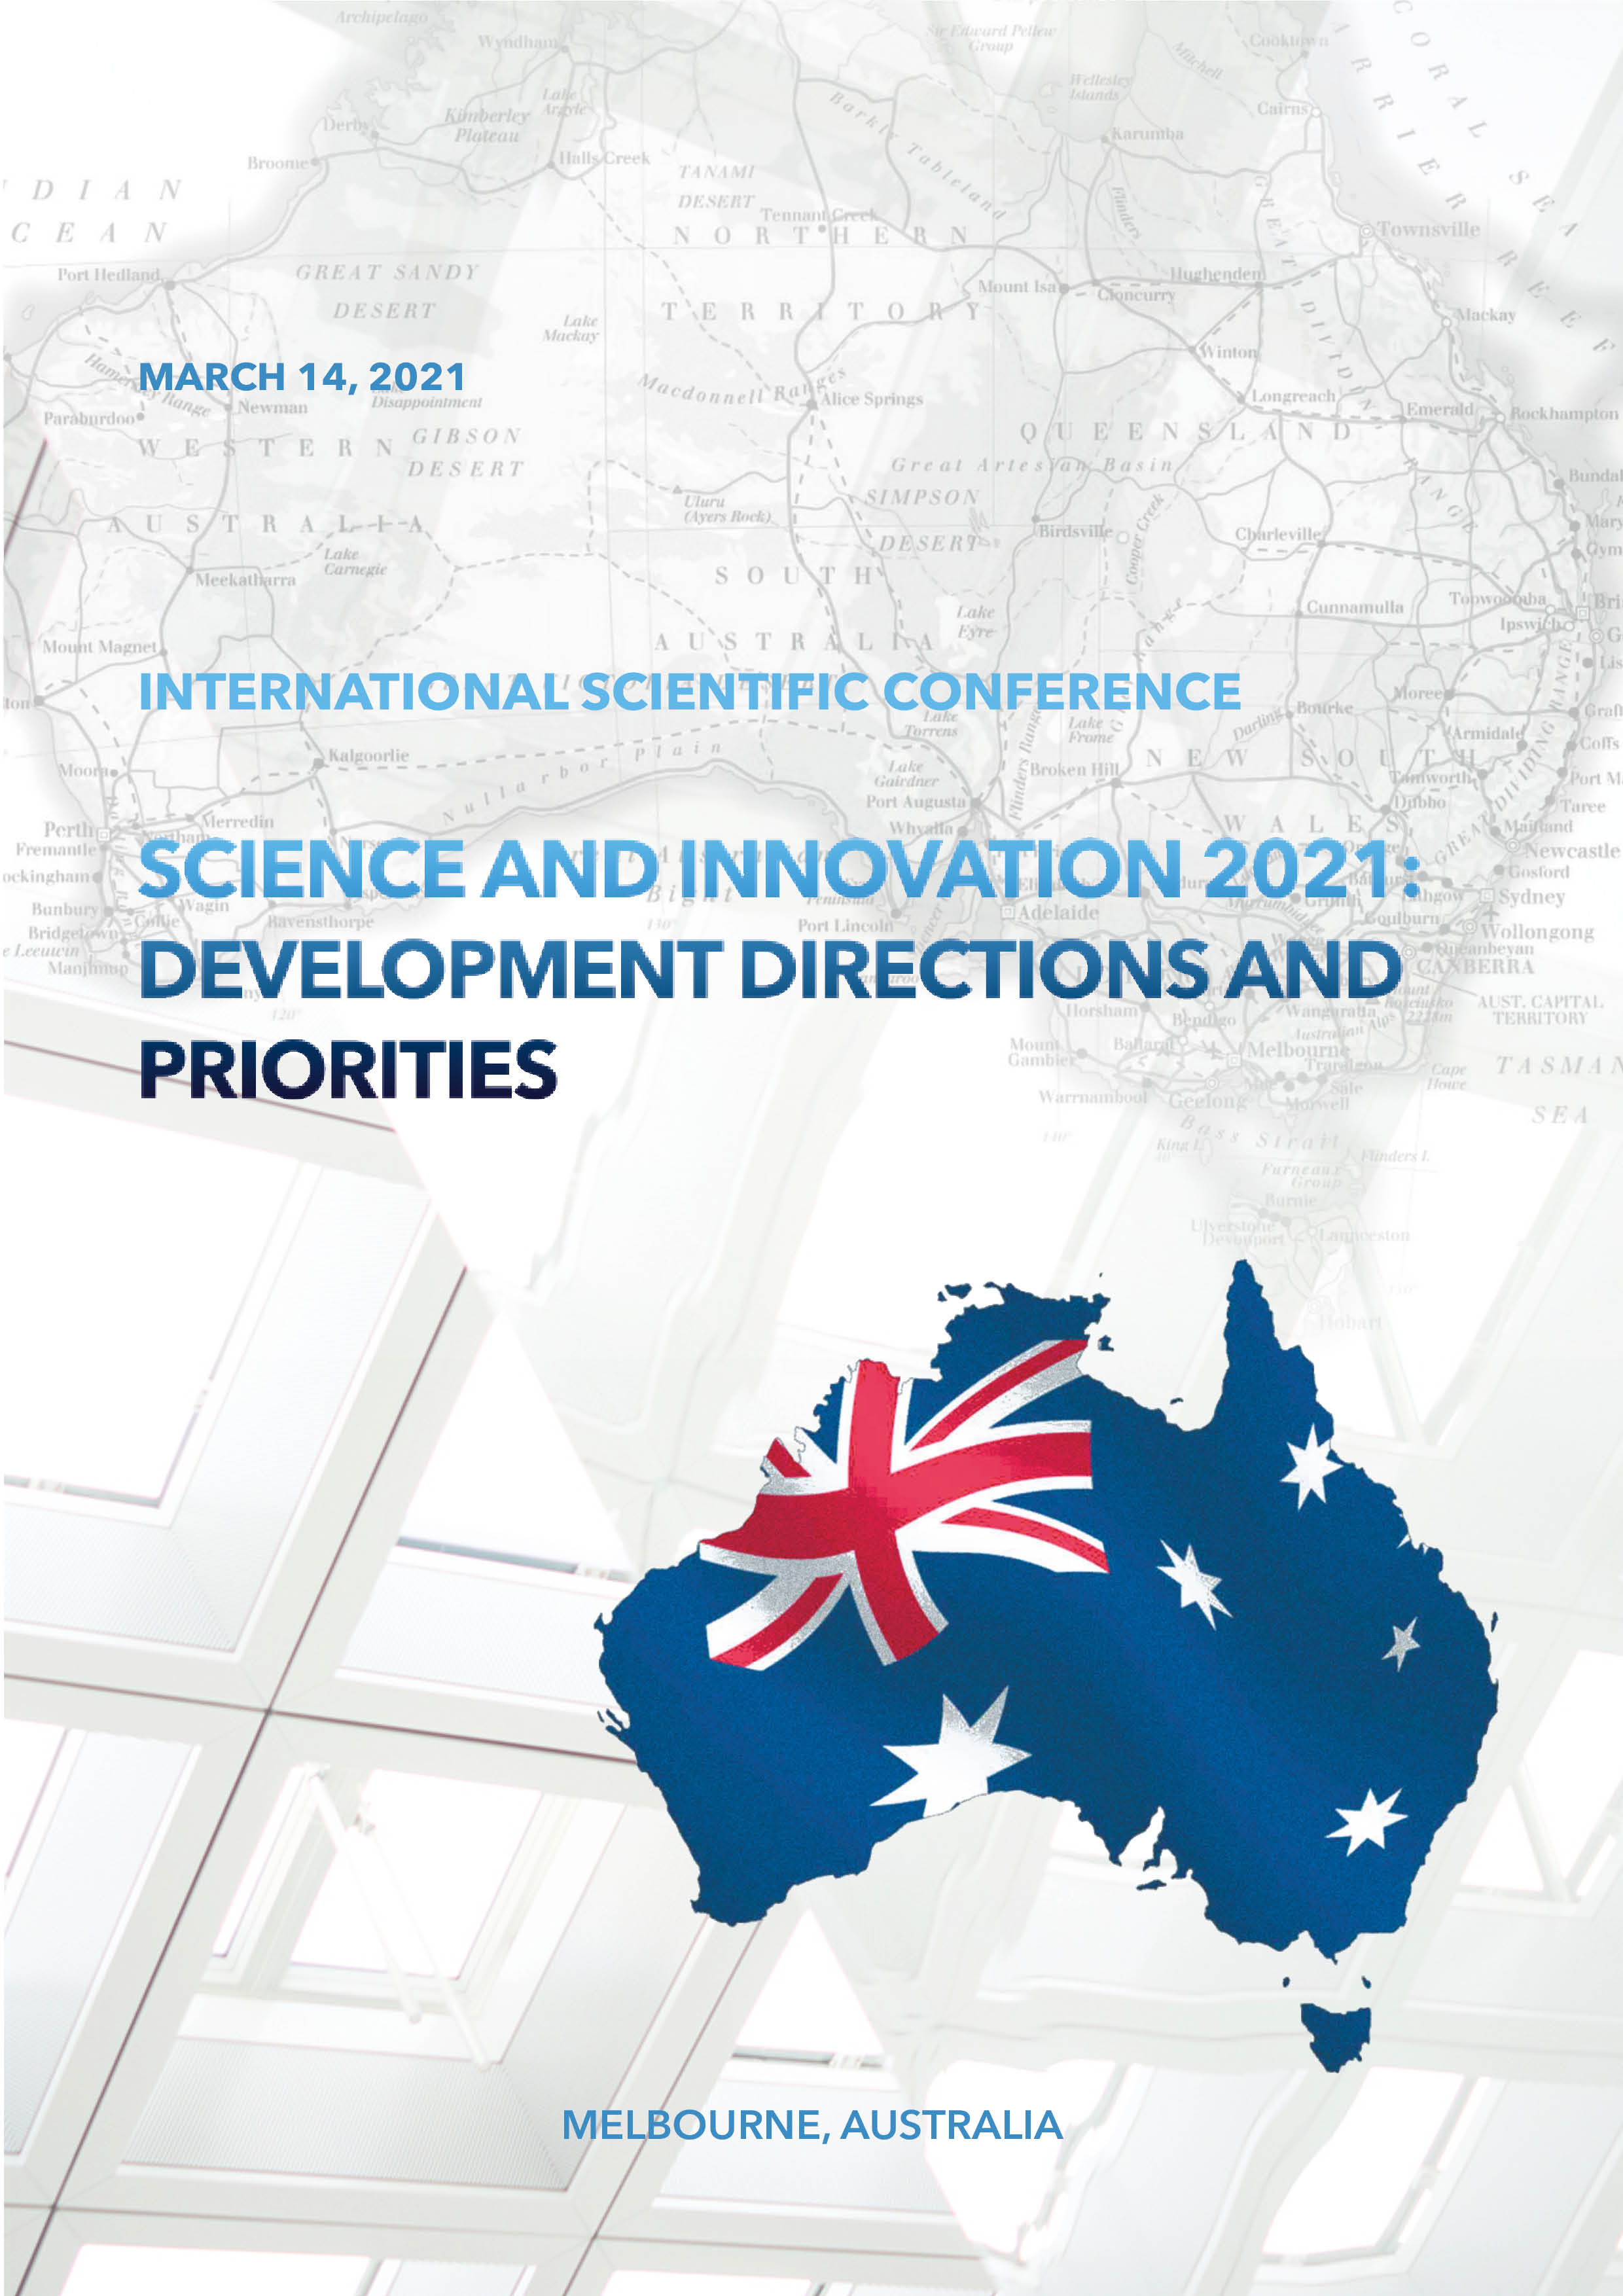 SCIENCE AND INNOVATION 2021: DEVELOPMENT DIRECTIONS AND PRIORITIES. Vol.I